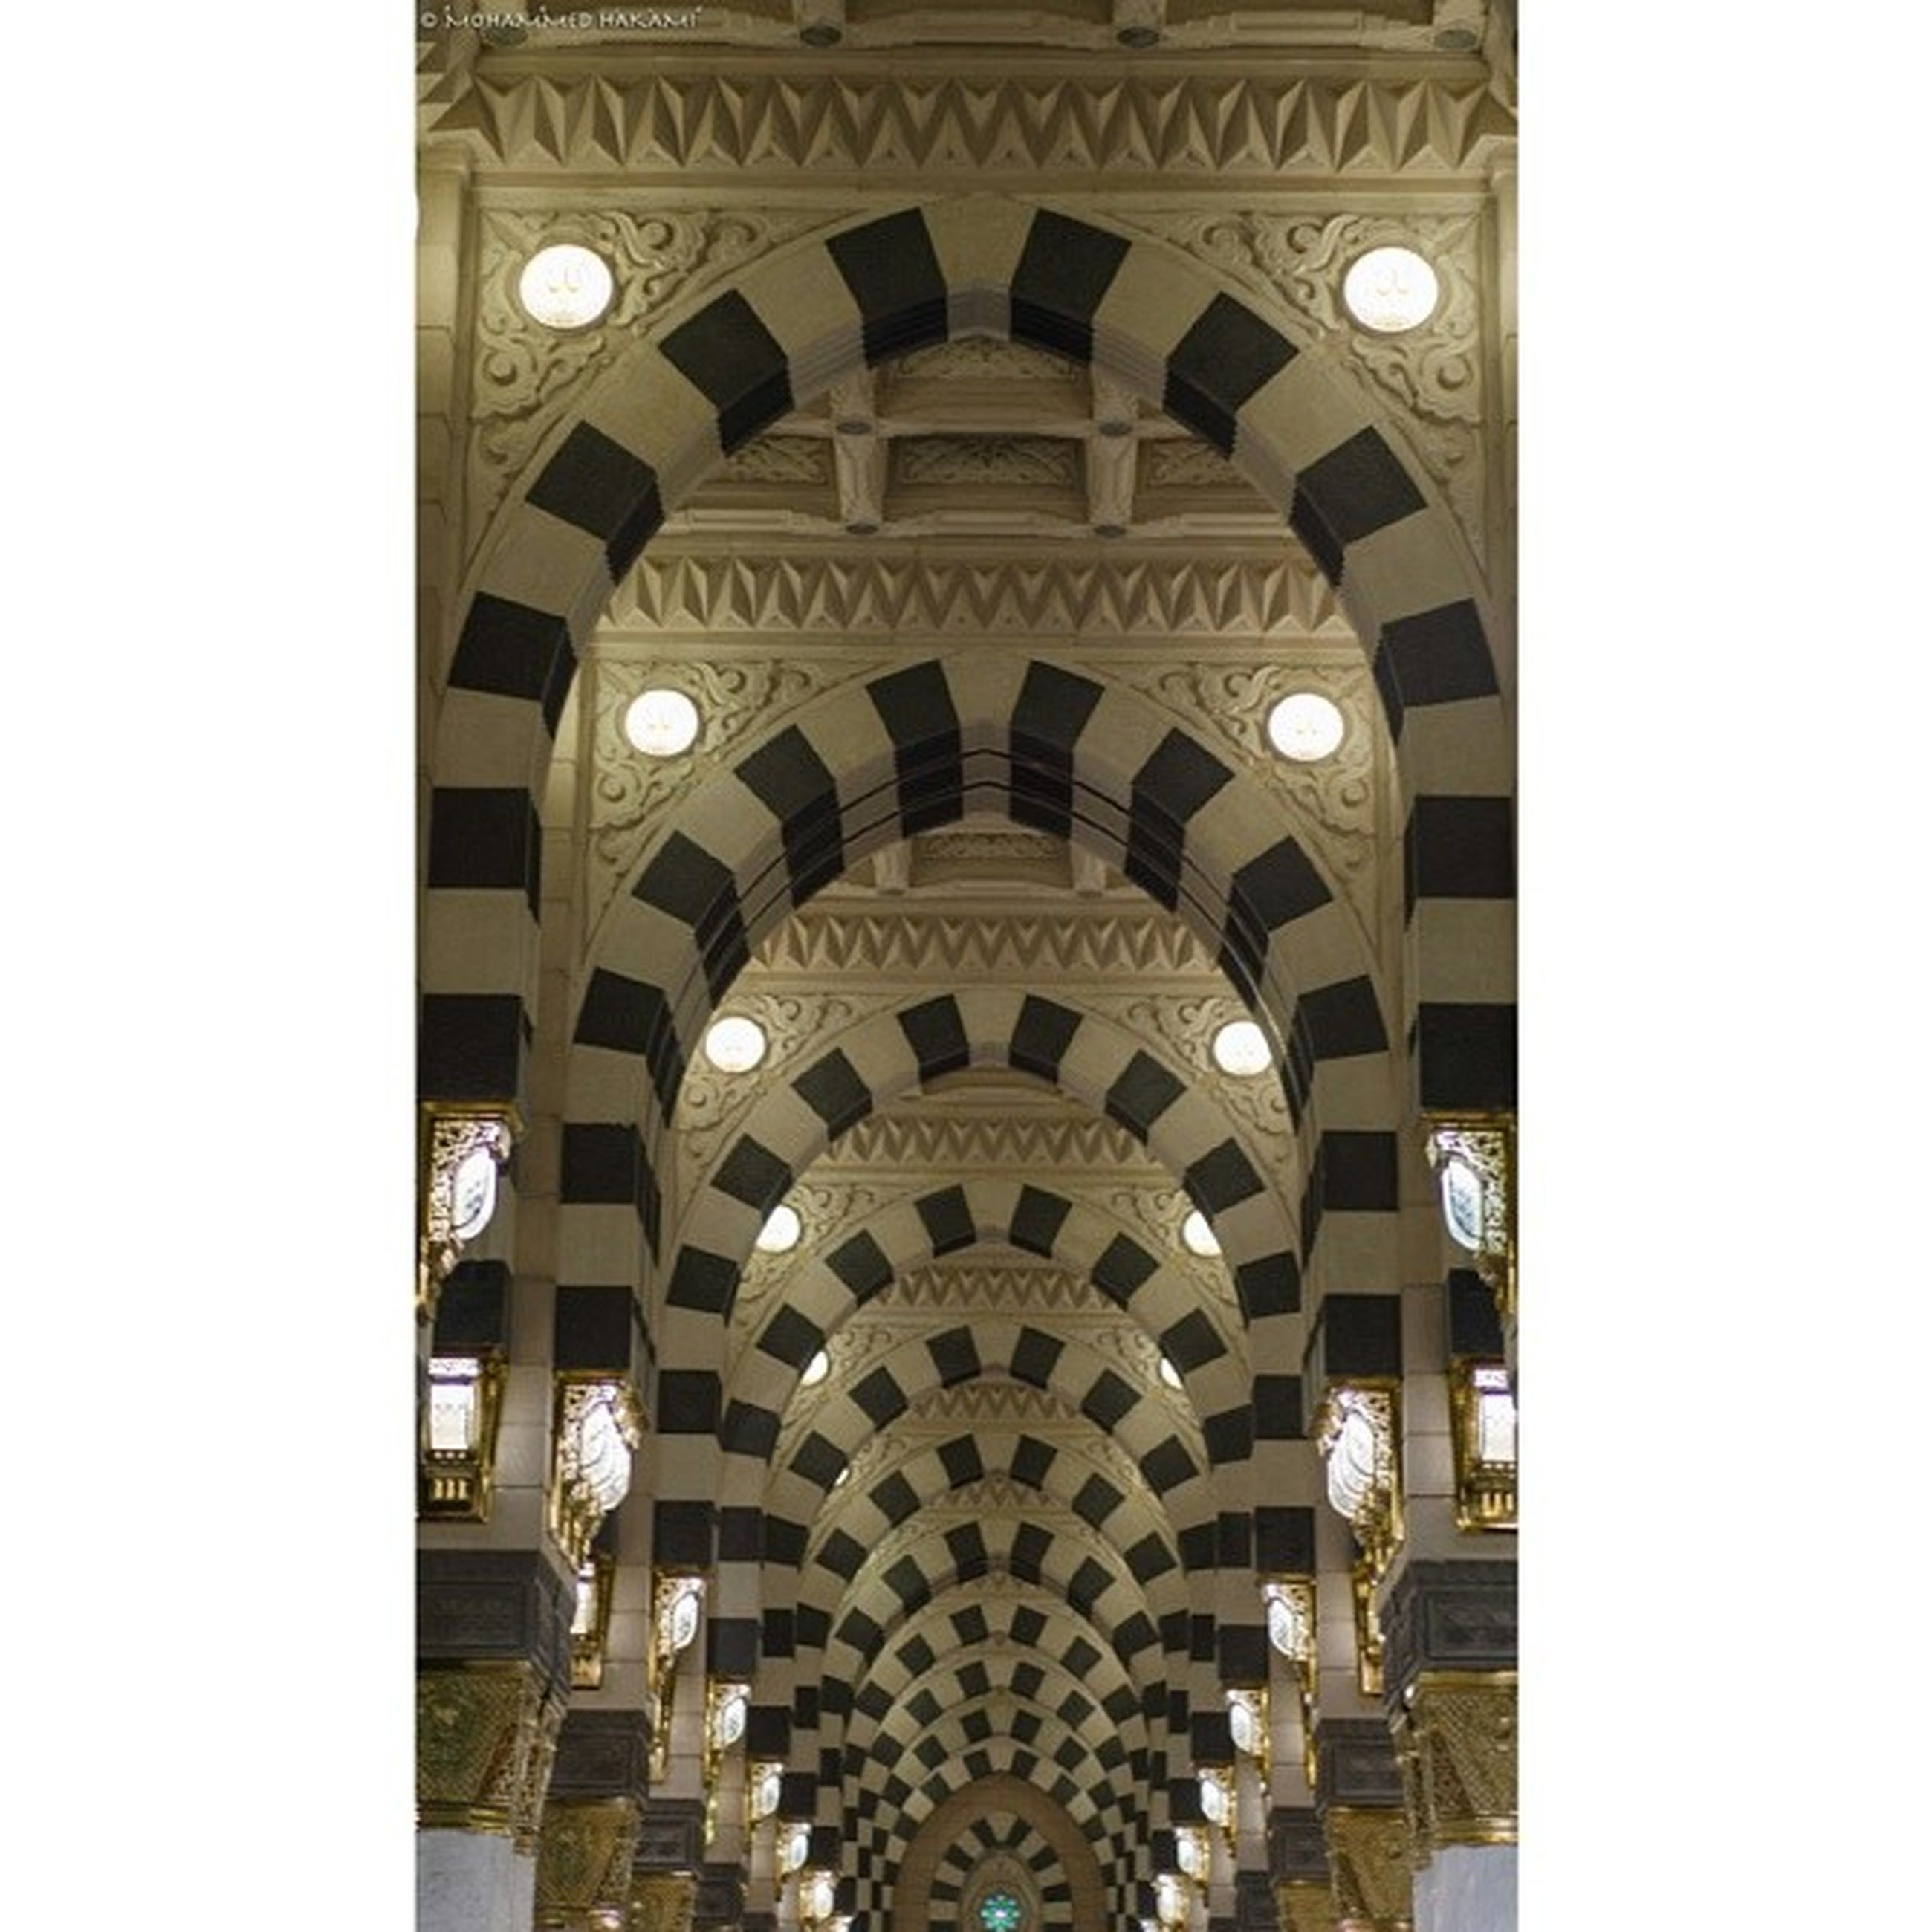 architecture, built structure, arch, building exterior, low angle view, place of worship, famous place, religion, indoors, transfer print, church, history, travel destinations, spirituality, tourism, international landmark, cathedral, architectural feature, ornate